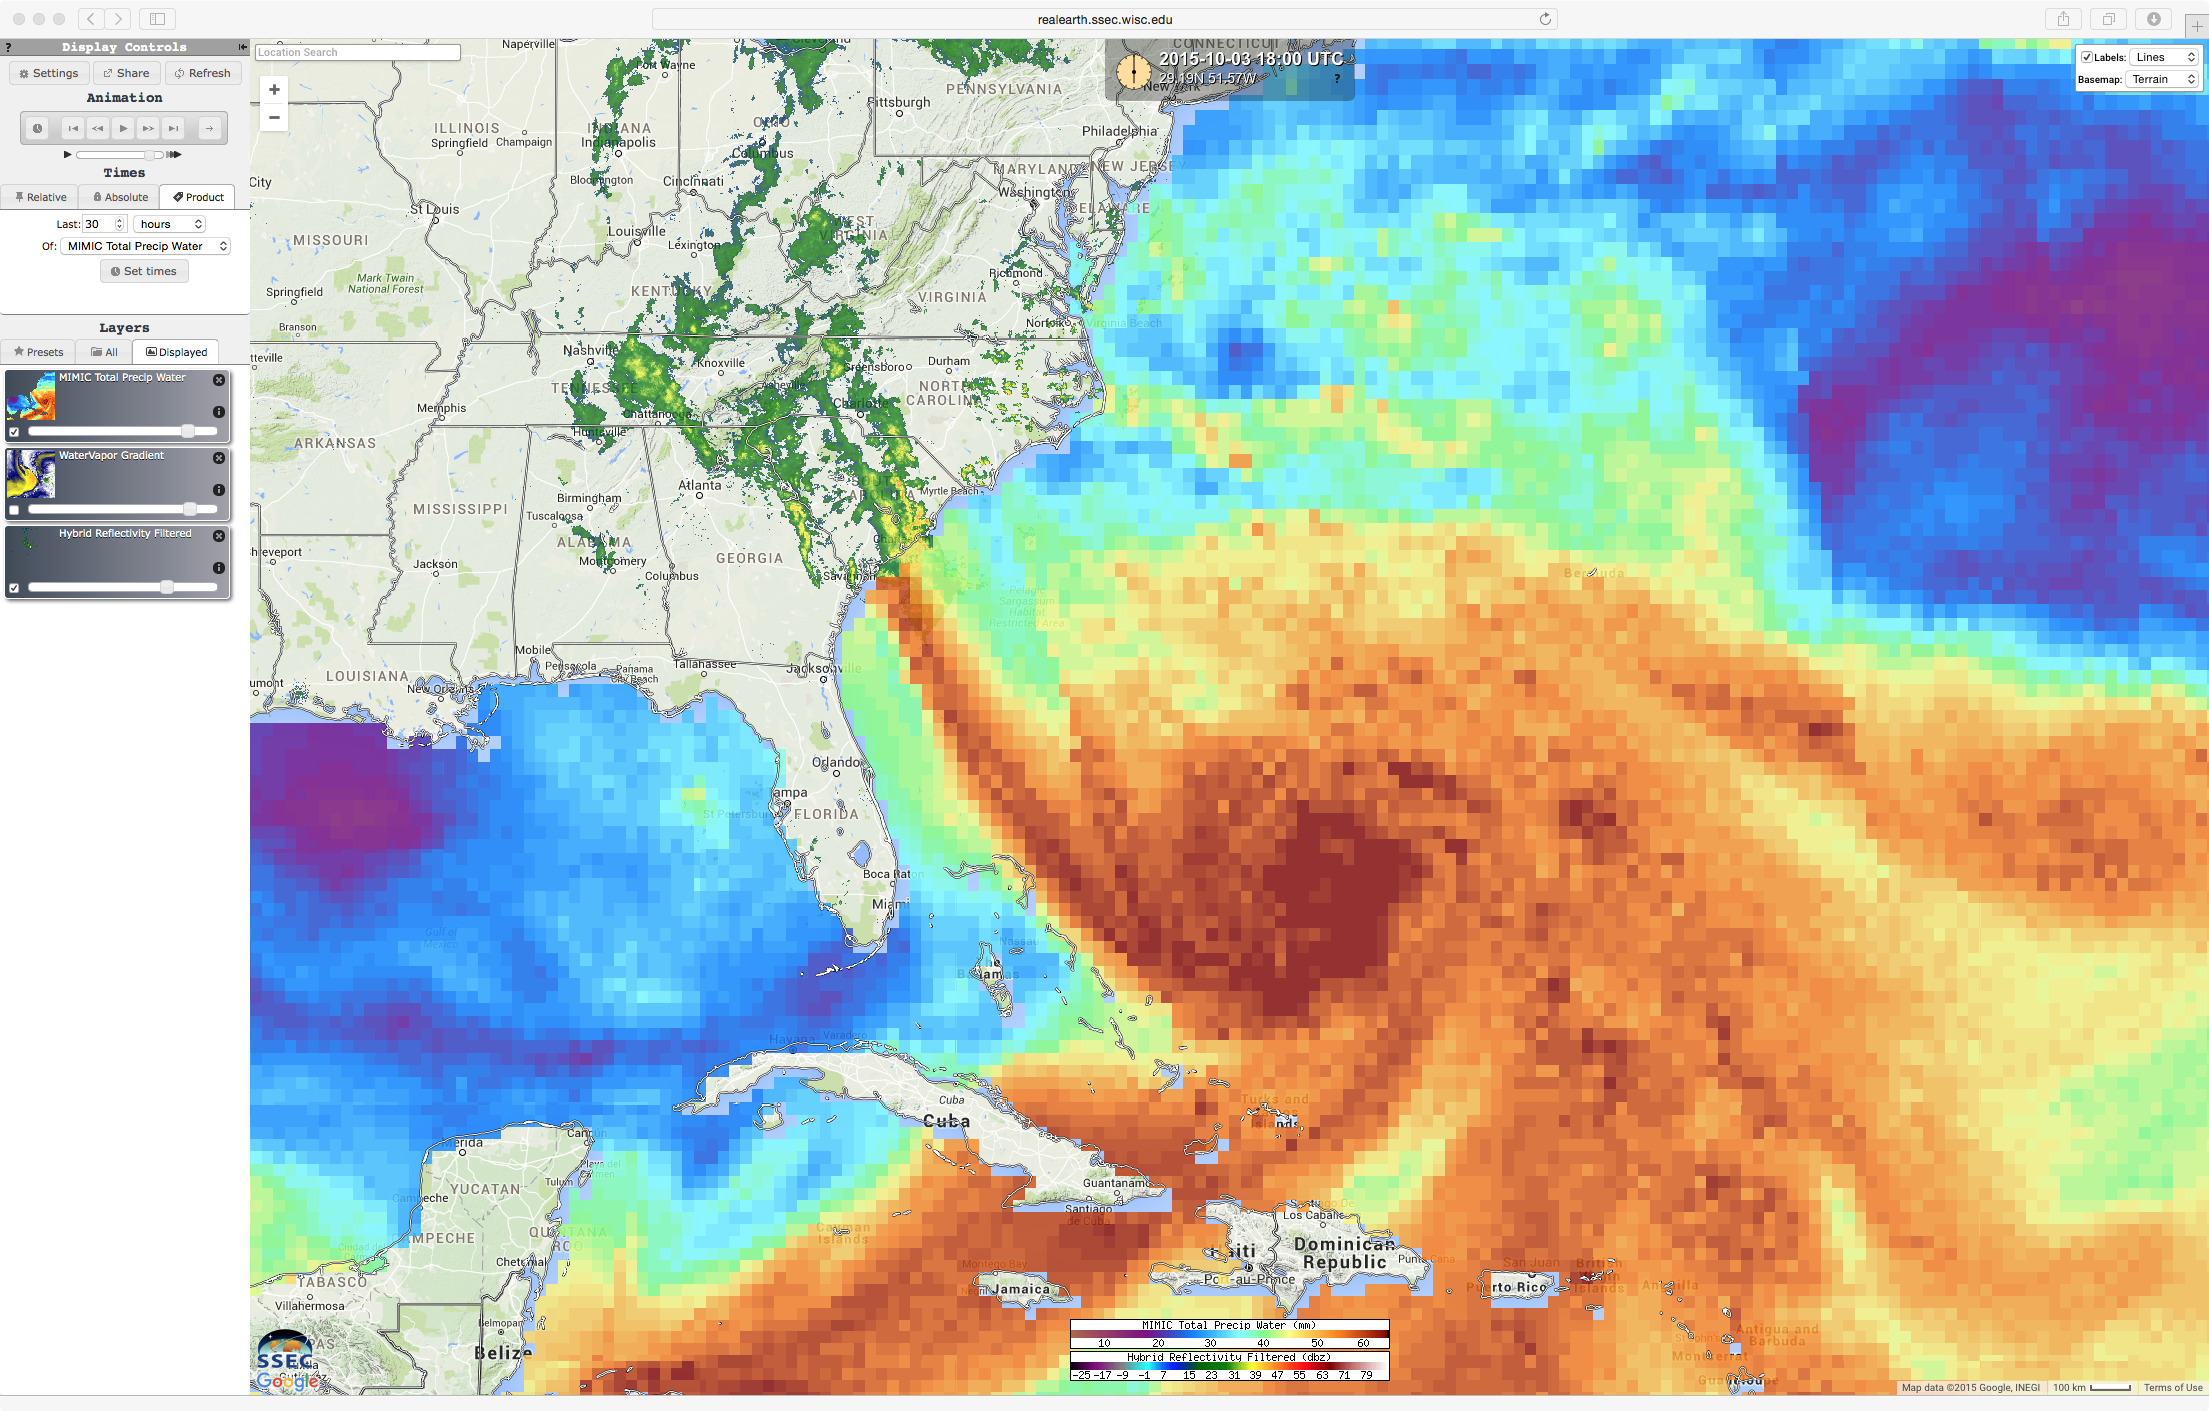 MIMIC Total Precipitable Water product and Radar reflectivity [click to animate]